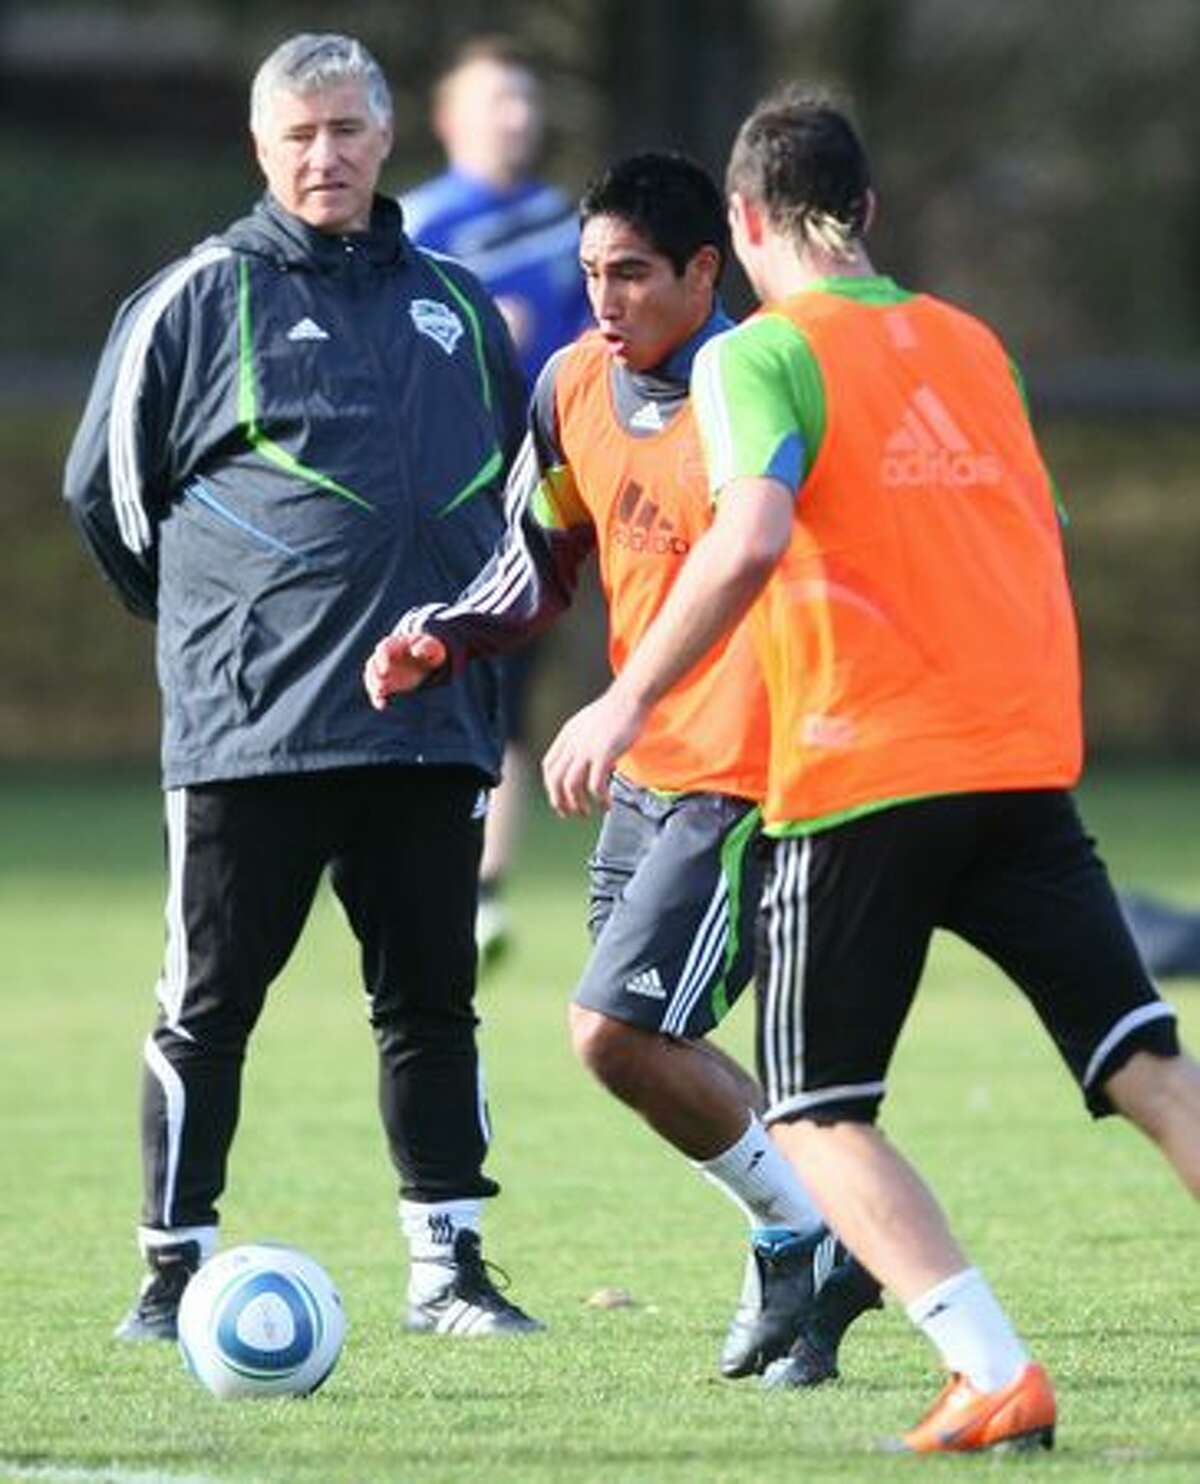 Seattle Sounders coach Sigi Schmid watches as draft pick David Estrada practices the first day of training camp on Monday at Starfire Sports Complex in Tukwila.